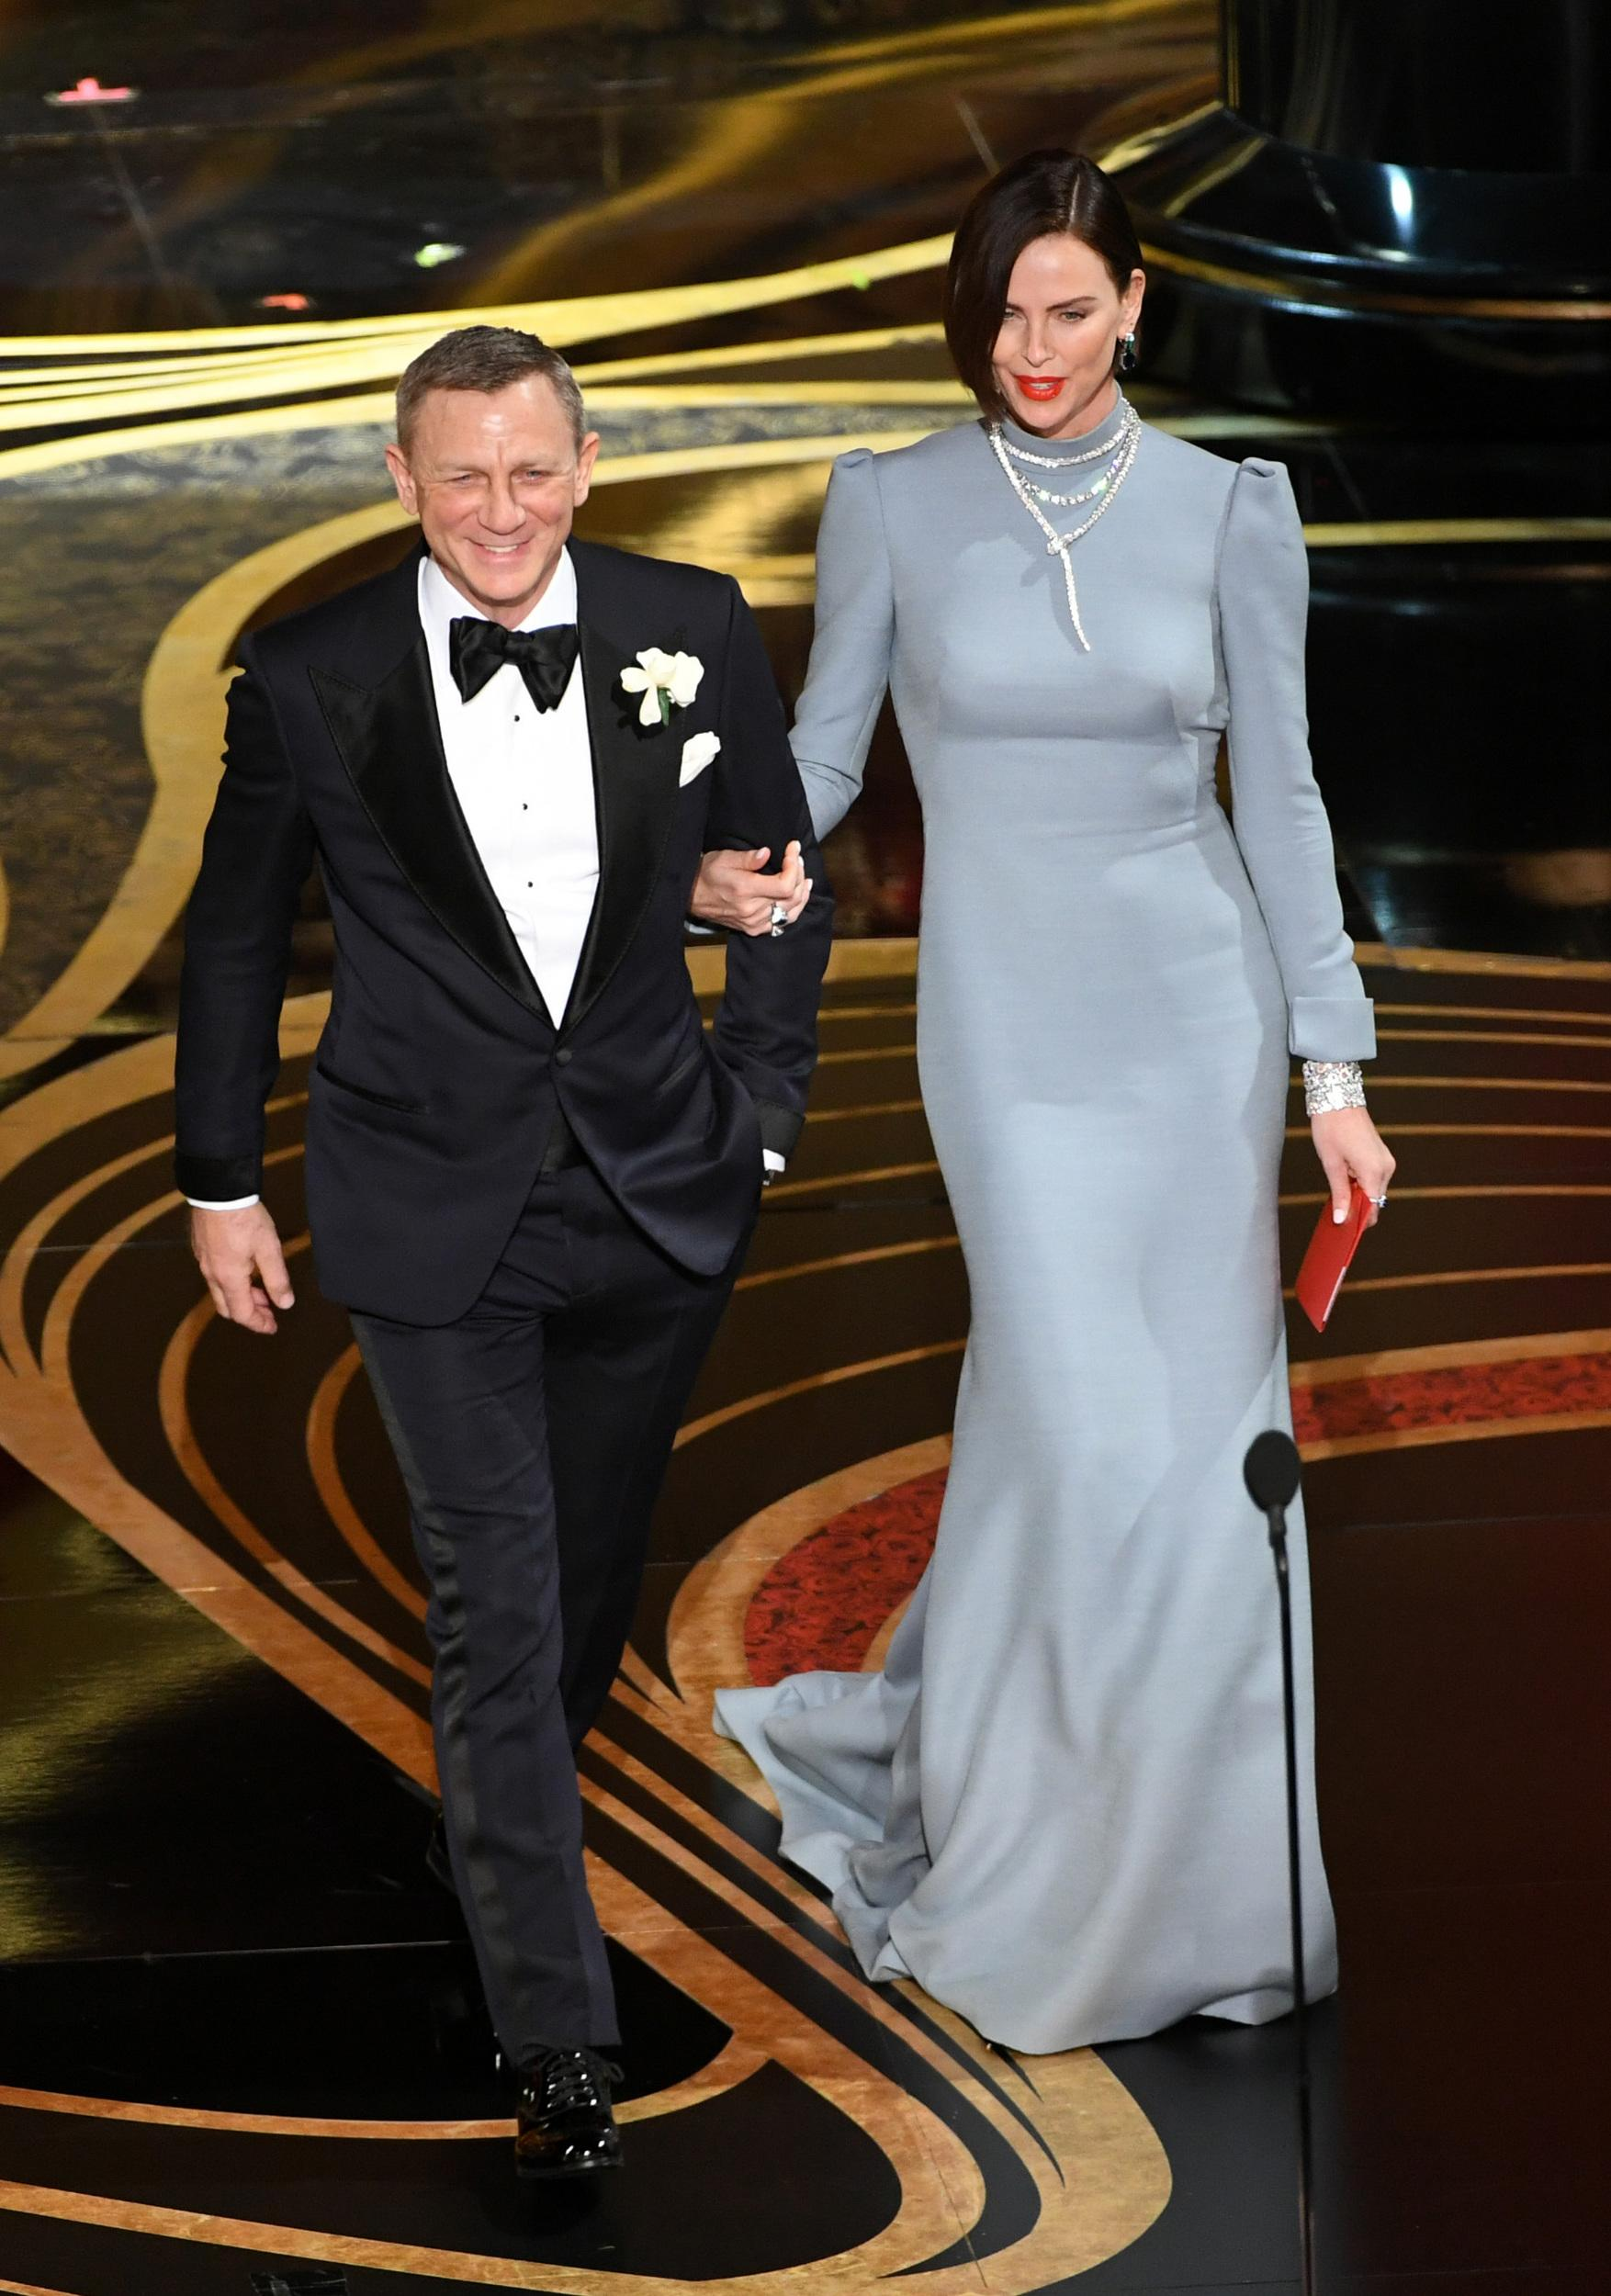 HOLLYWOOD, CALIFORNIA - FEBRUARY 24: (L-R) Daniel Craig and Charlize Theron walk onstage during the 91st Annual Academy Awards at Dolby Theatre on February 24, 2019 in Hollywood, California. (Photo by Kevin Winter/Getty Images)